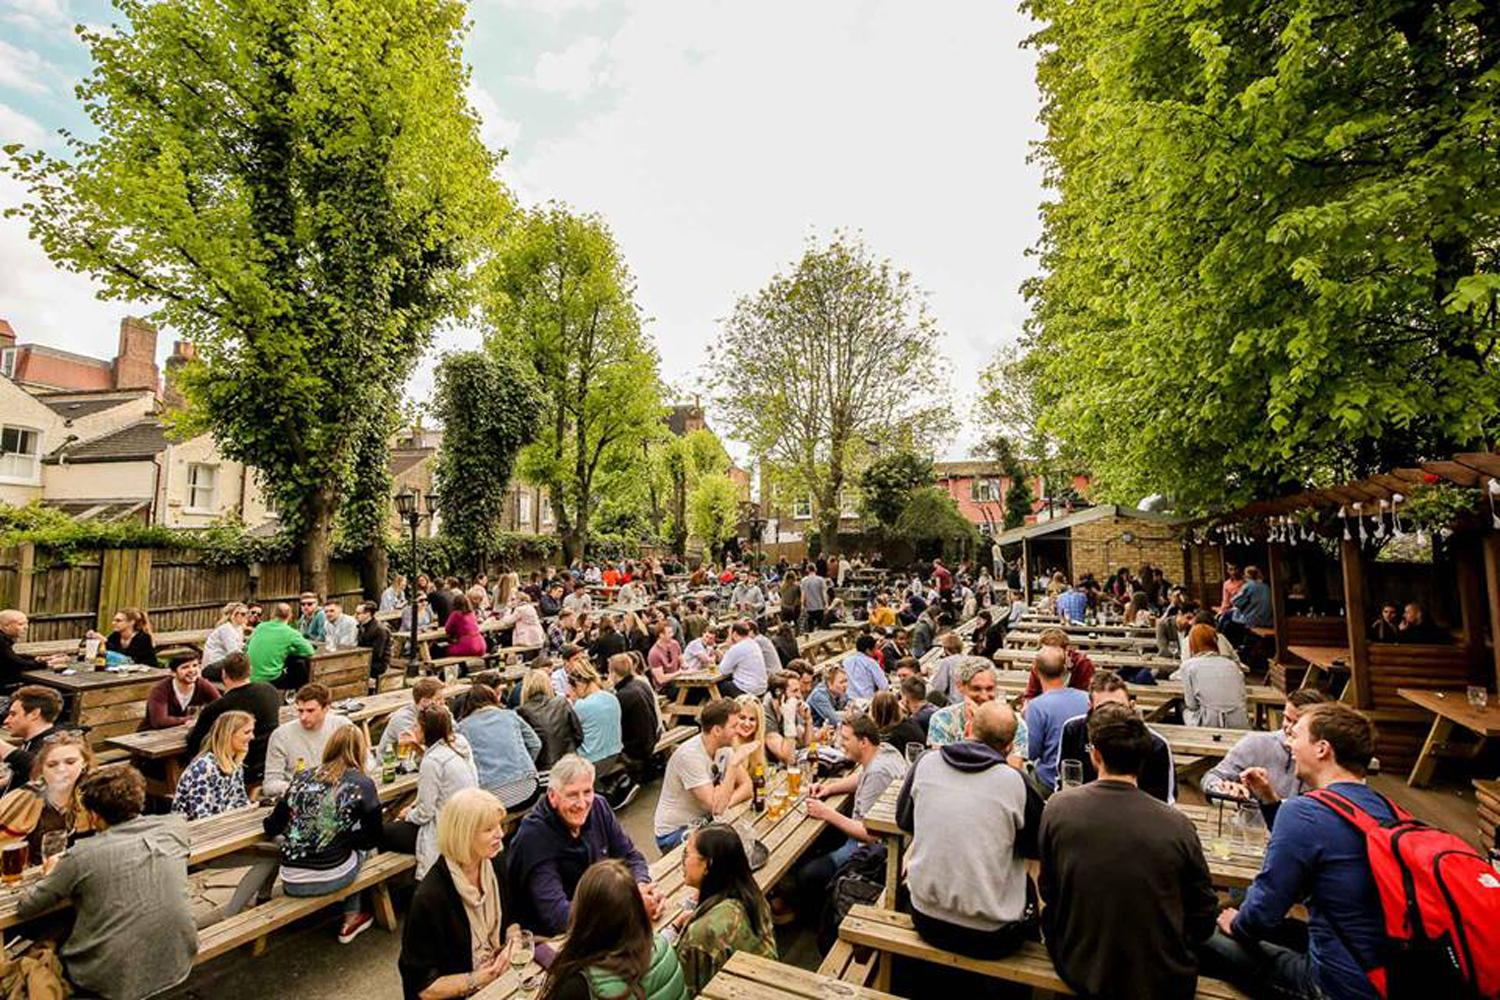 What to do in london in spring